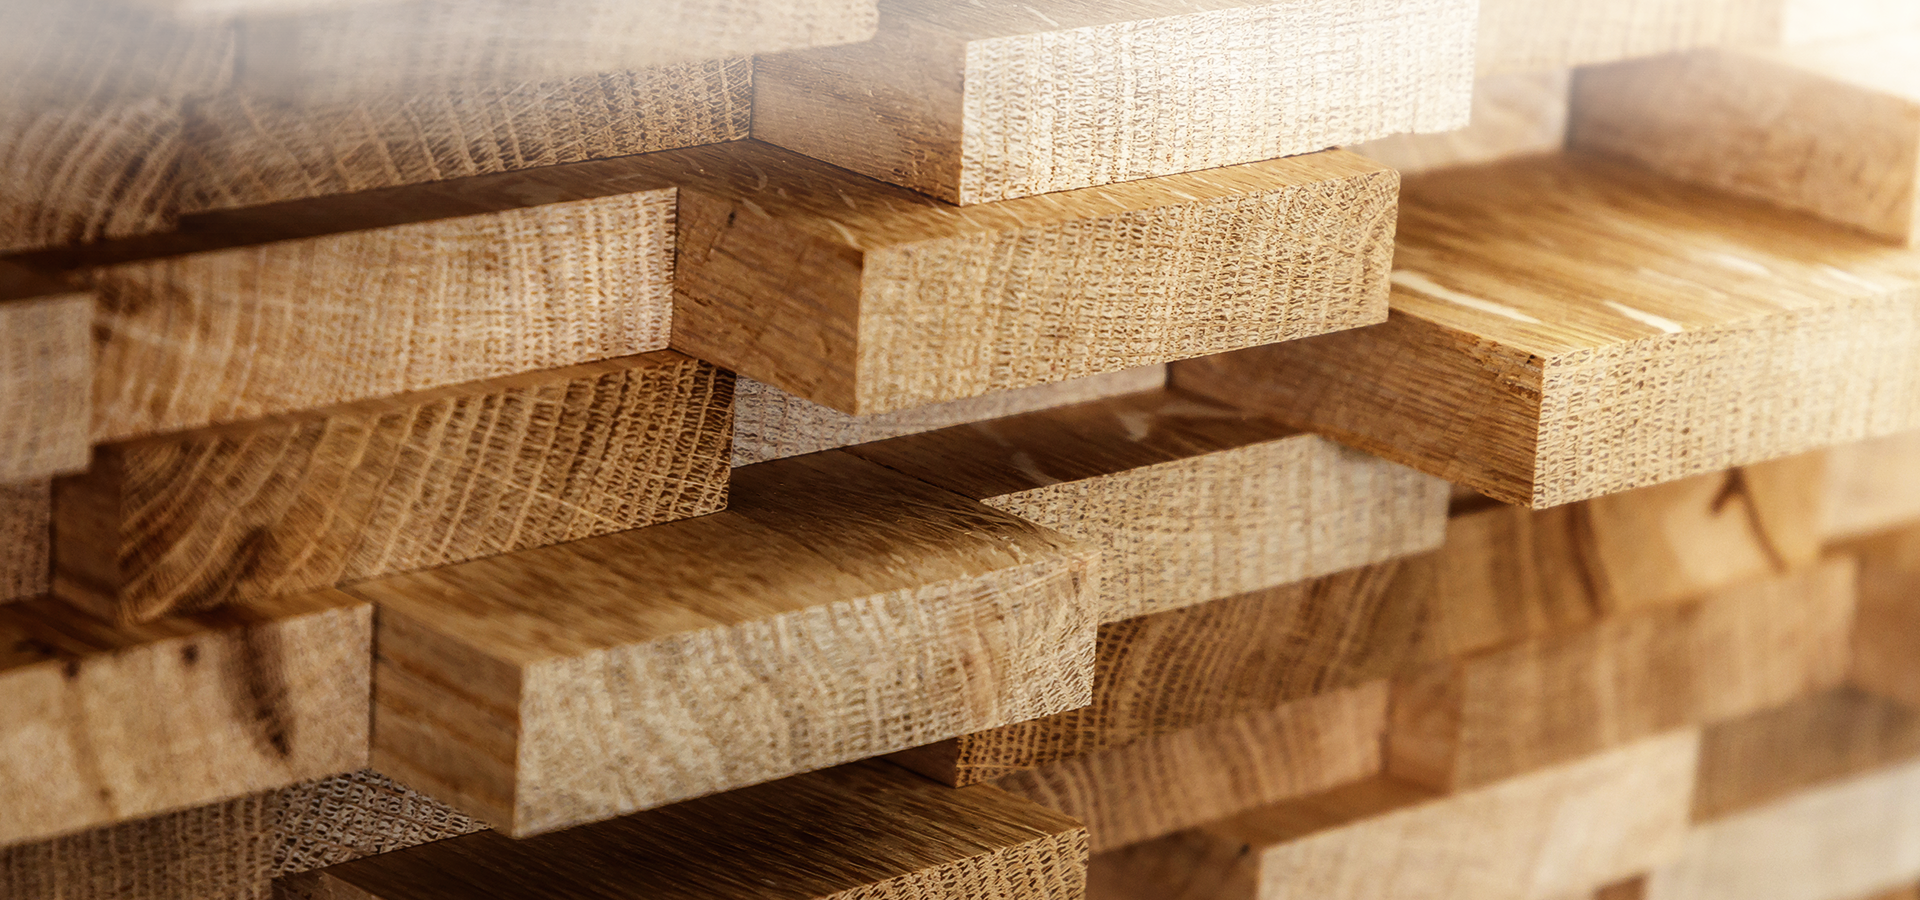 Manufacturer and Stockist of all sort of Timber and Allied products